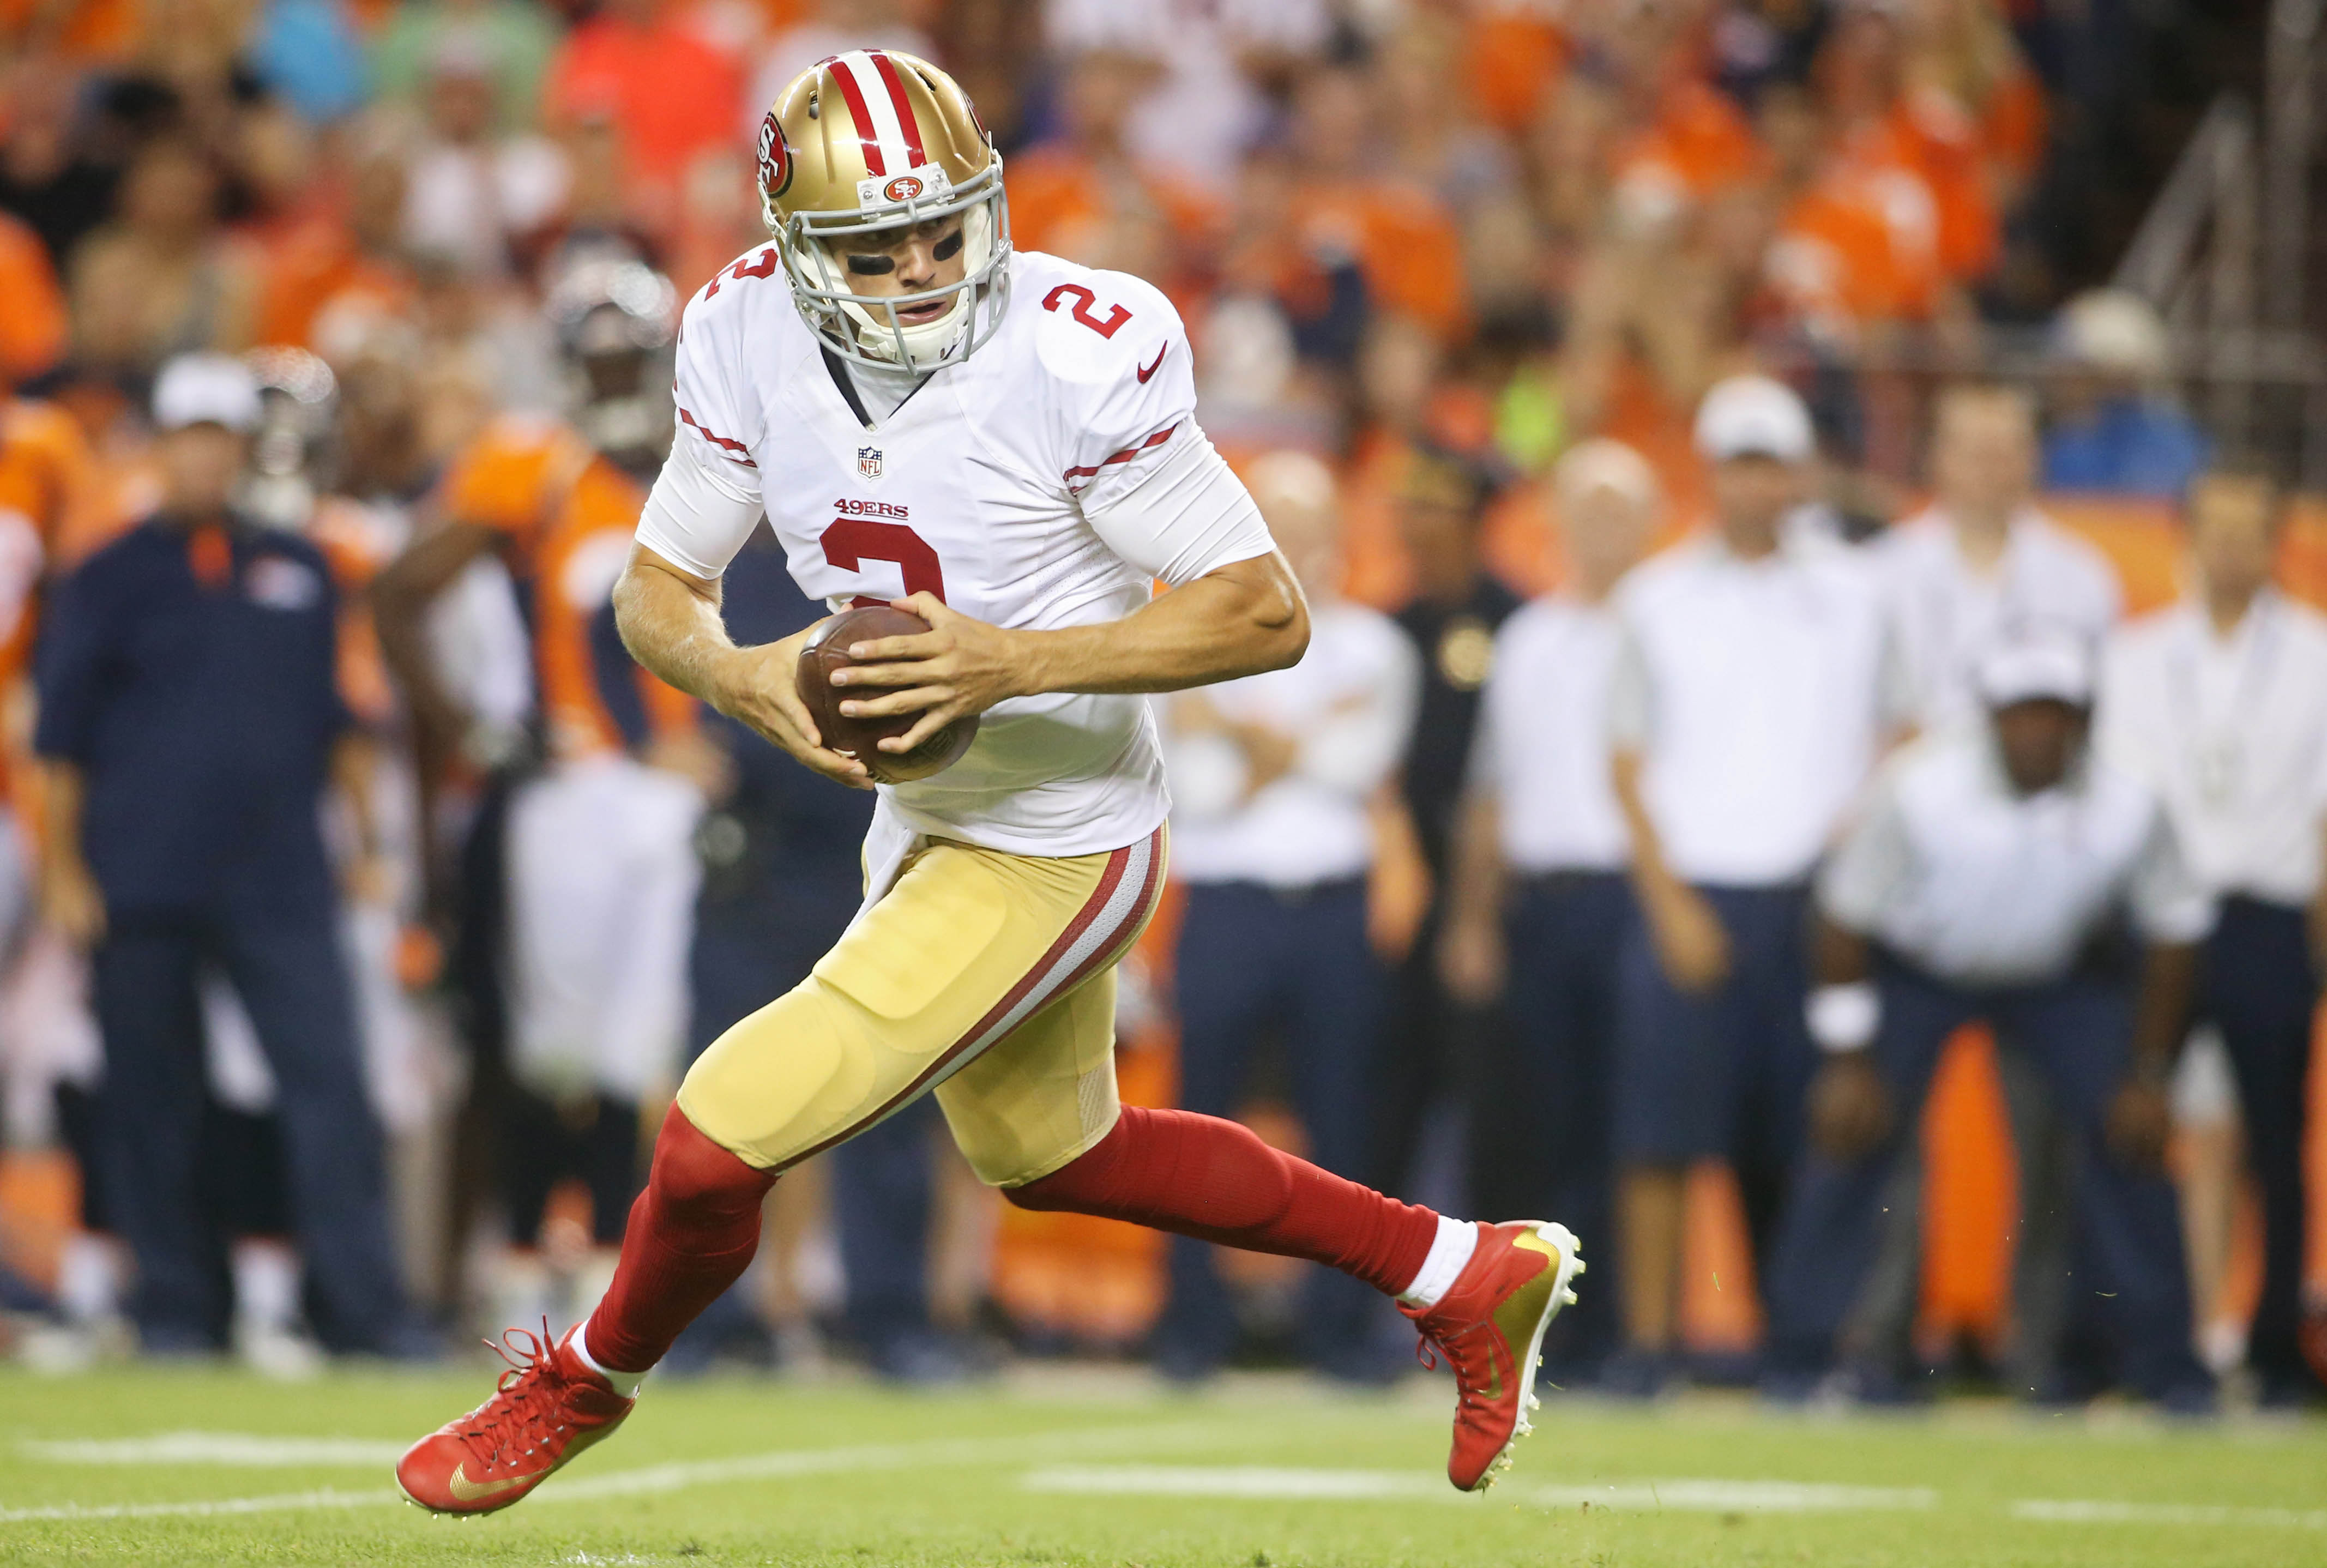 Whoa there, MF. Blaine Gabbert is now the starting quarterback for the reeling San Francisco 49ers. Fun times.